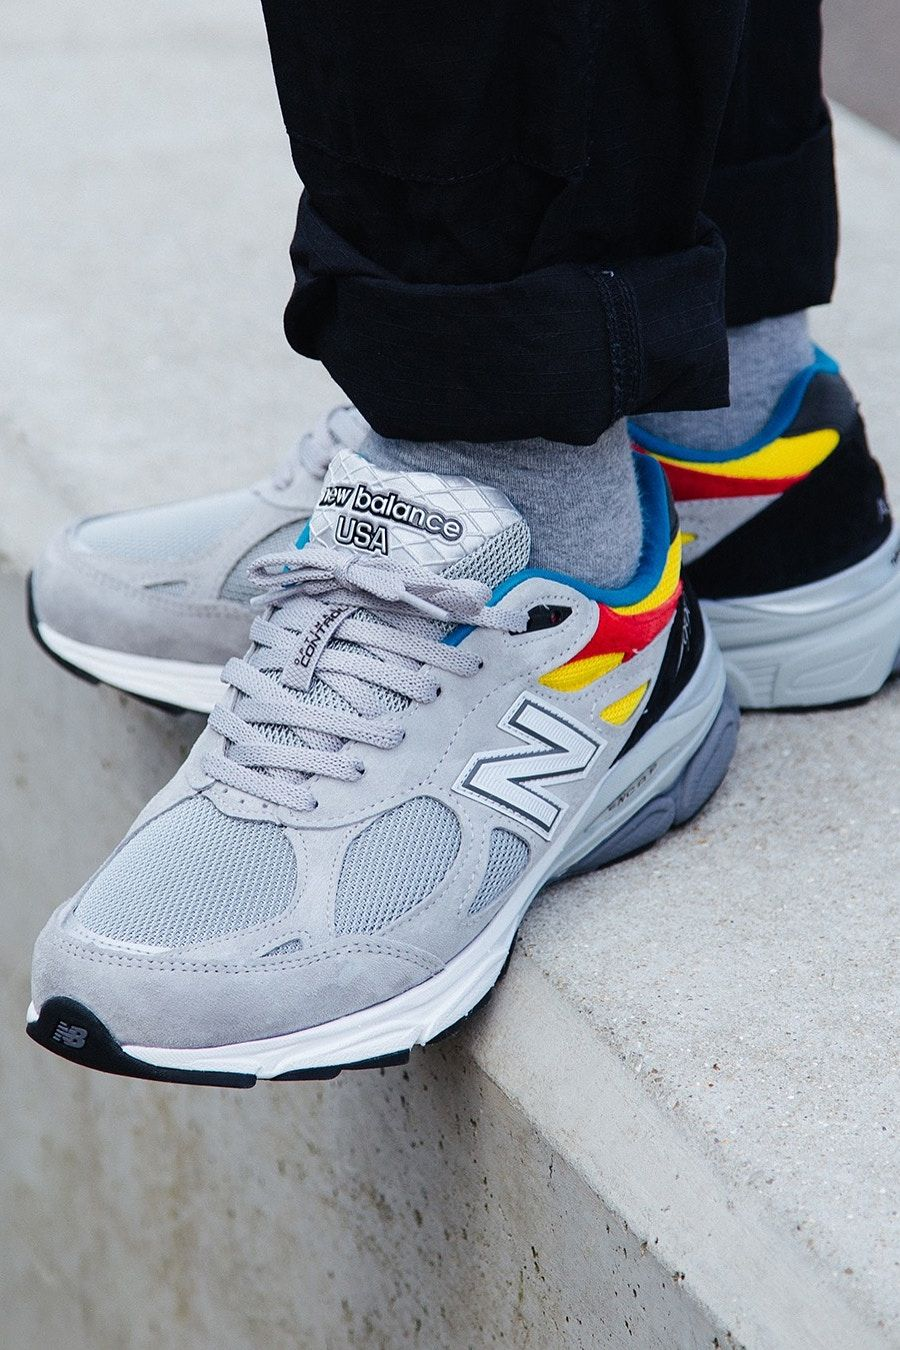 info for 8ef36 f99b6 Aries x New Balance 990v3 Gives the Dad Shoe Some Pop | New ...